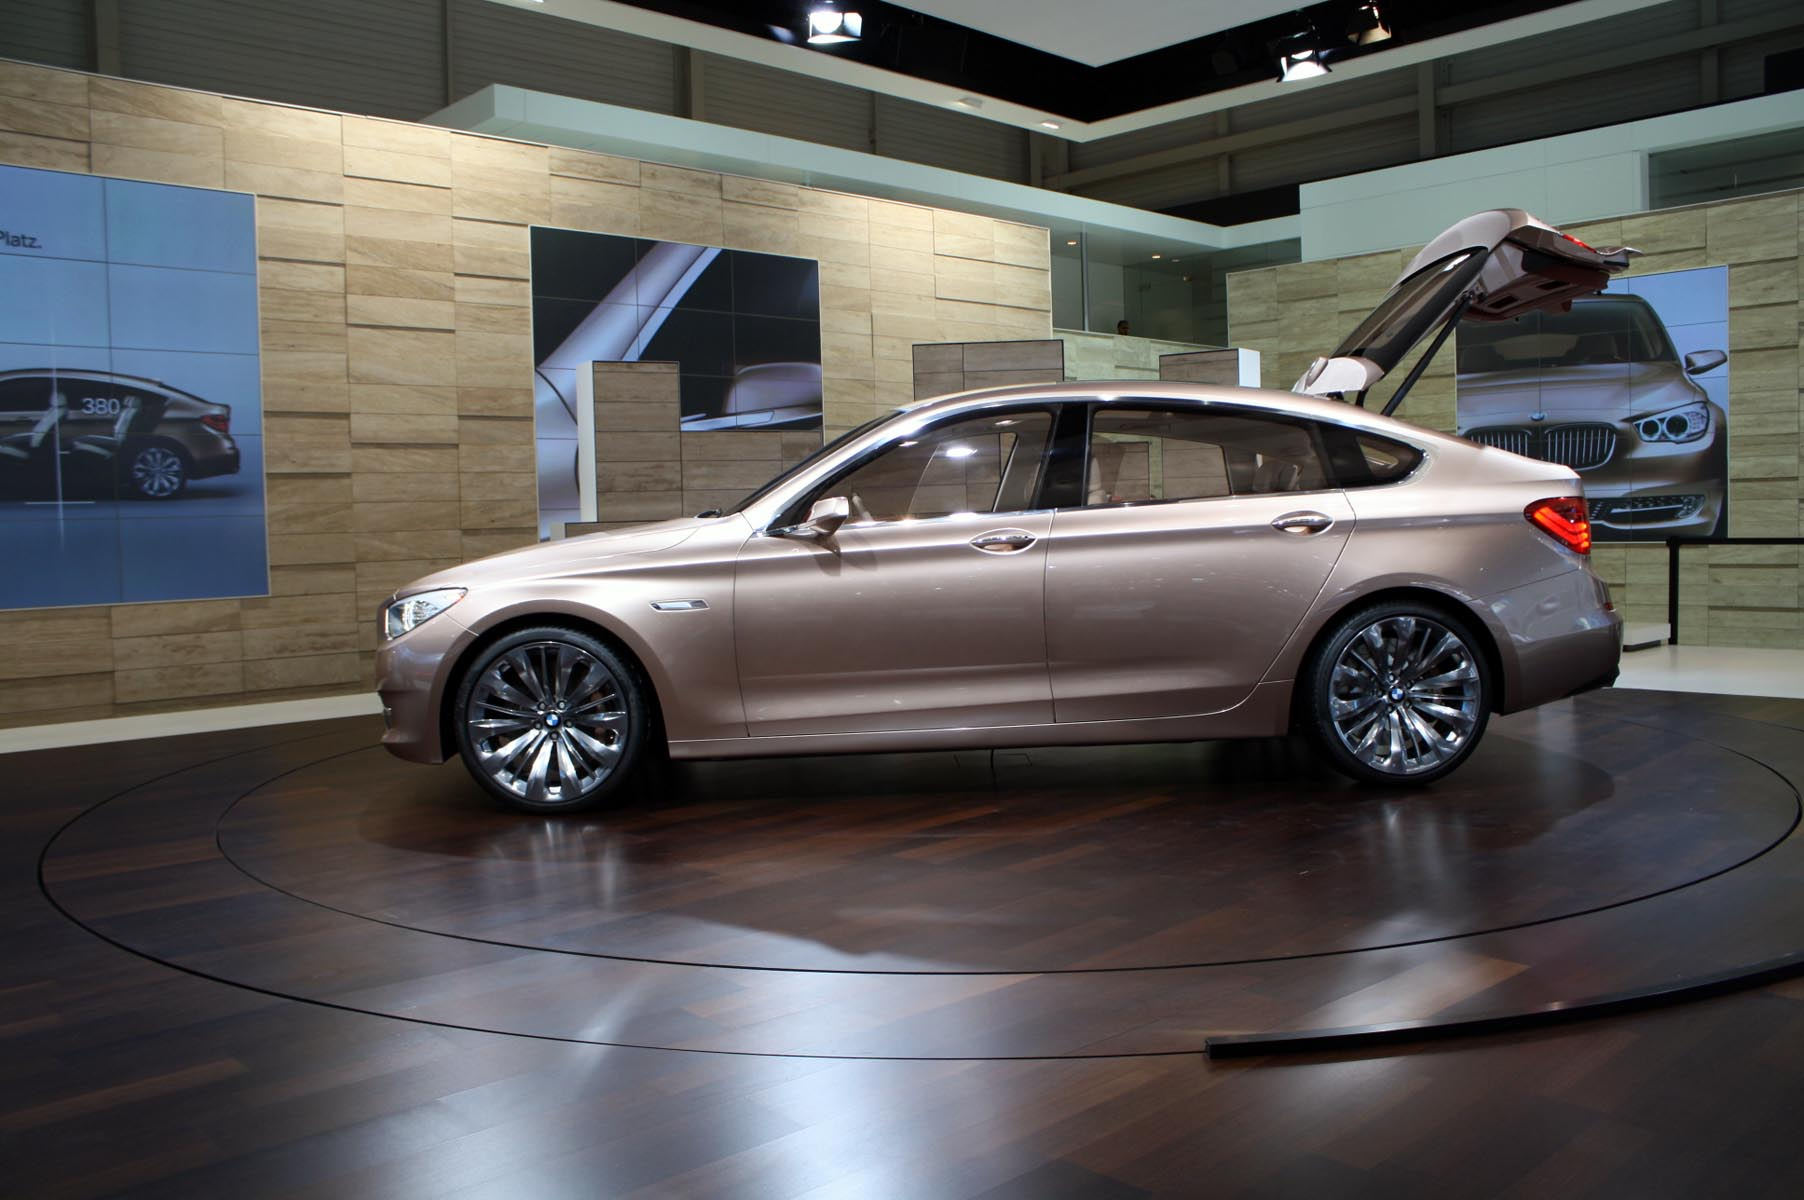 2008 BMW 5 Series Gran Turismo Concept - Car Pictures